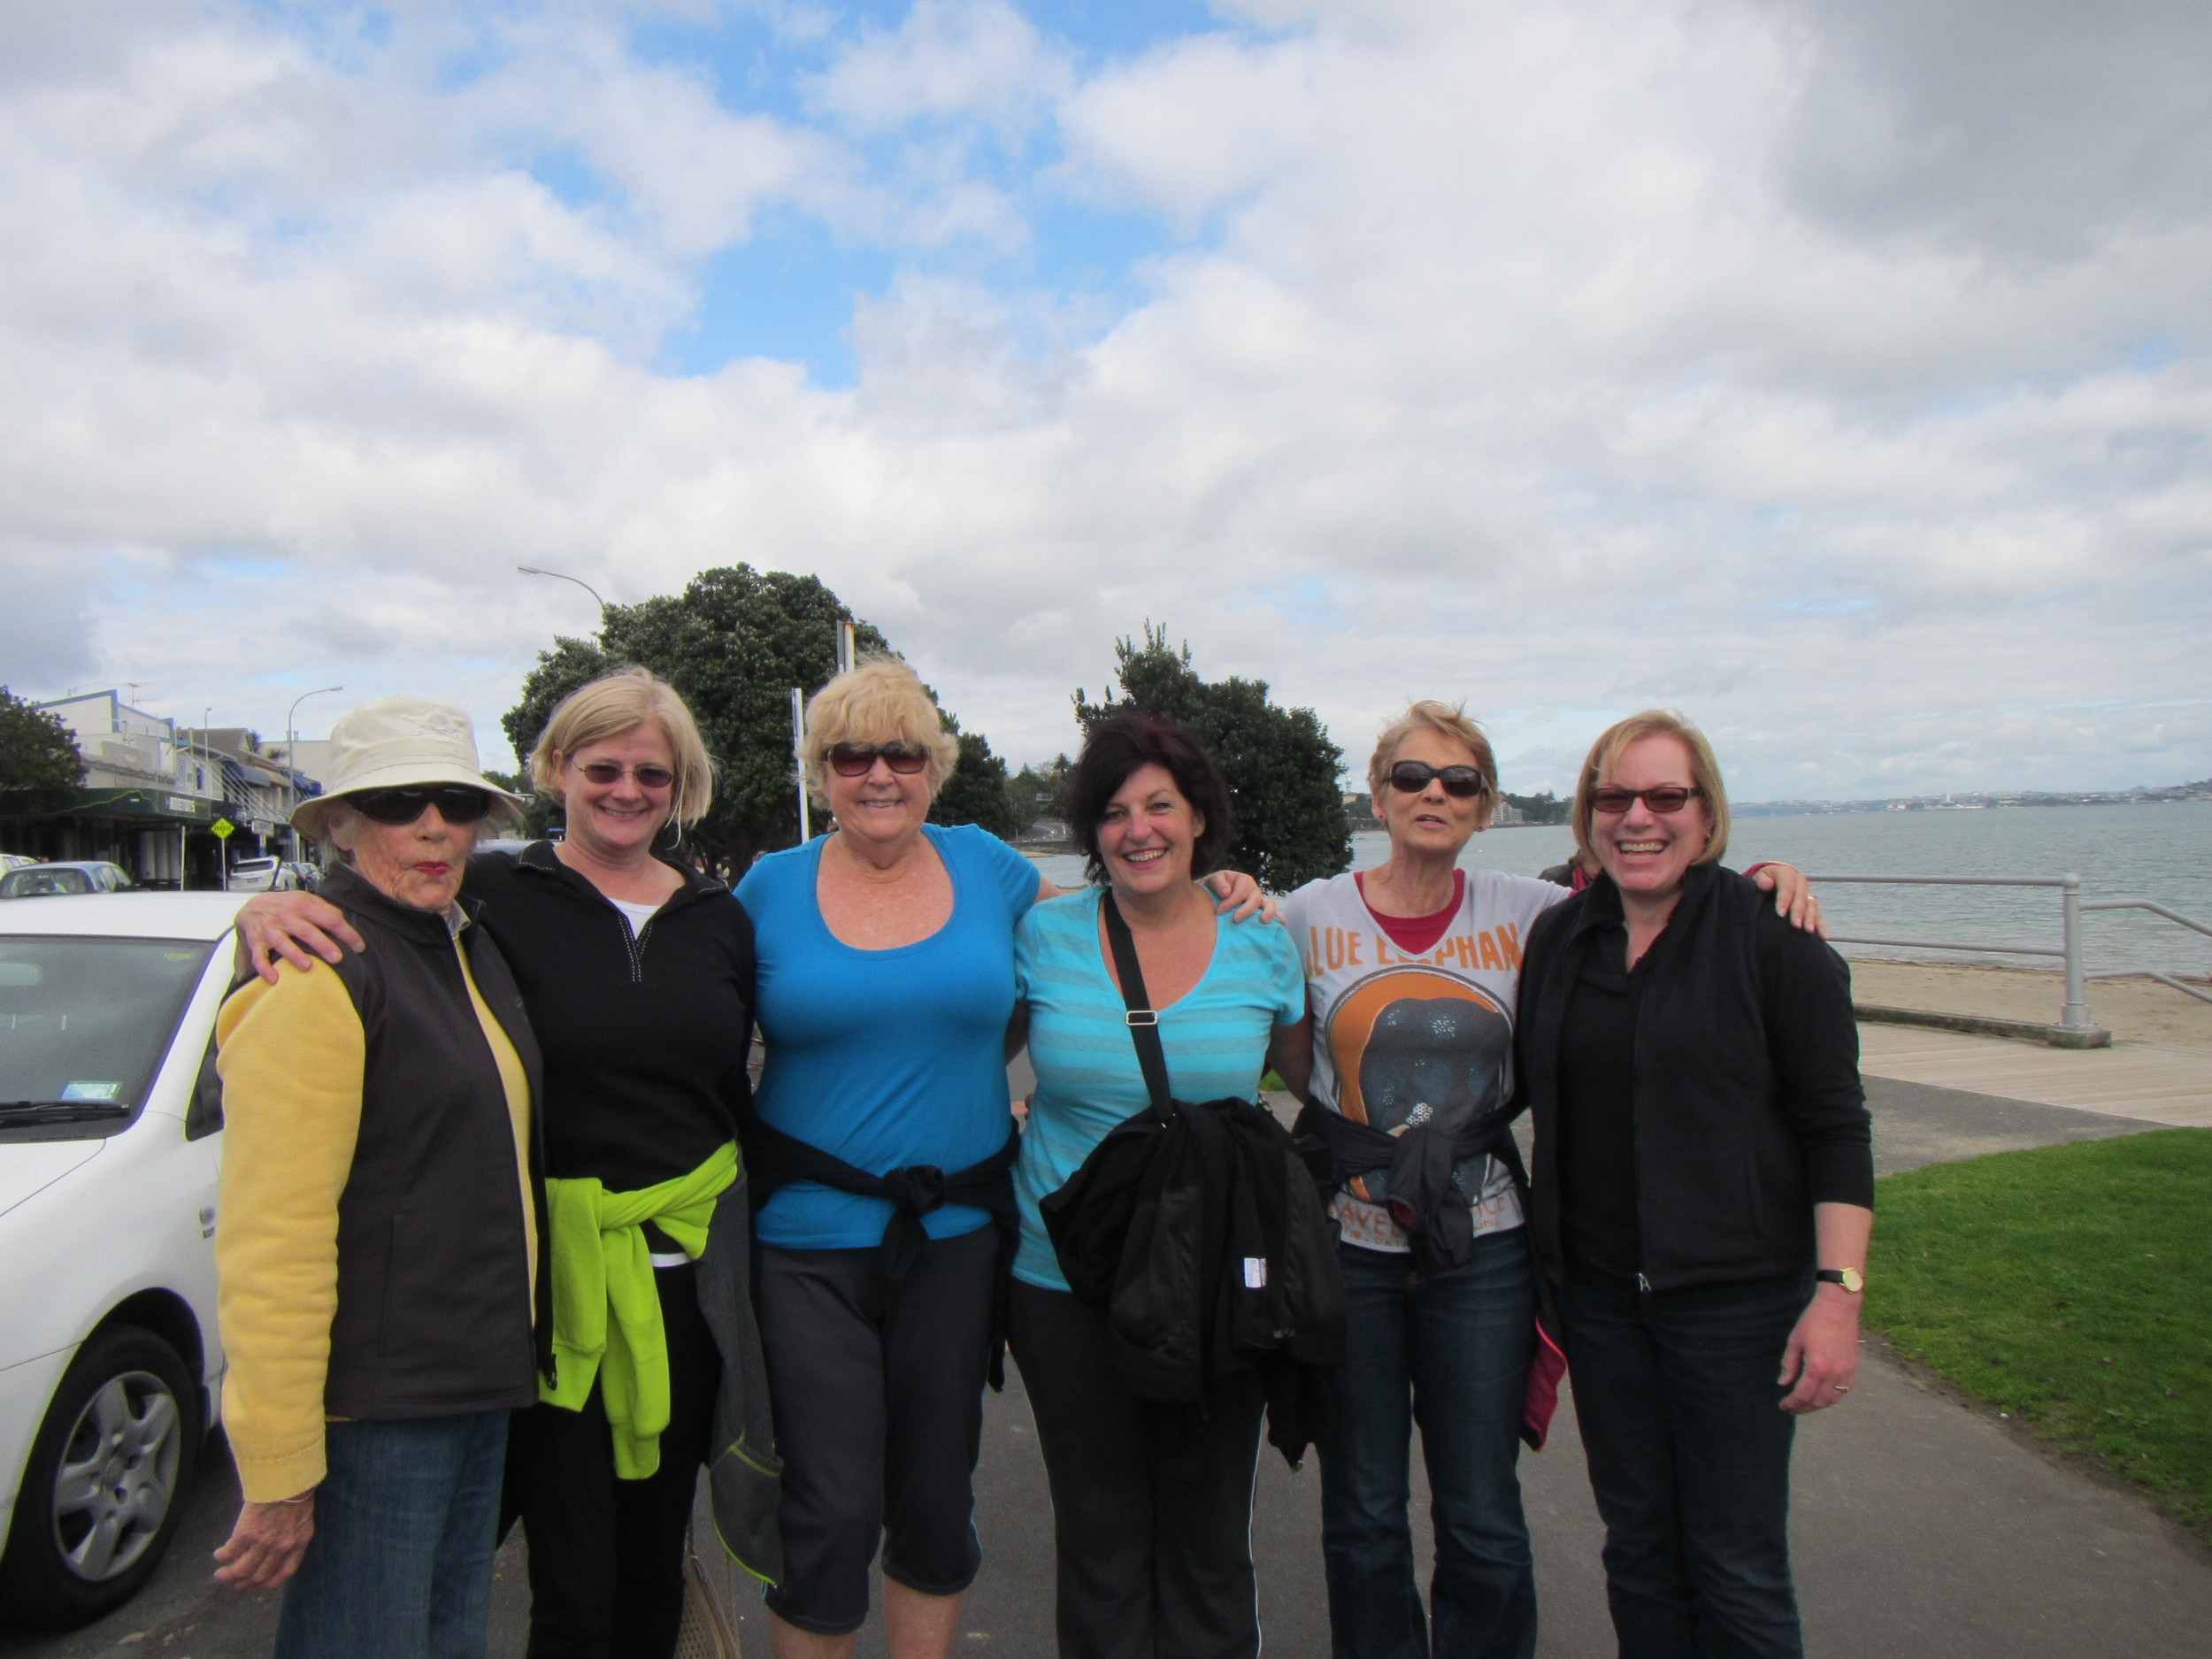 Ruth, LIsa, Pamela, Gabrielle, Deb and Betsy pause for a photo